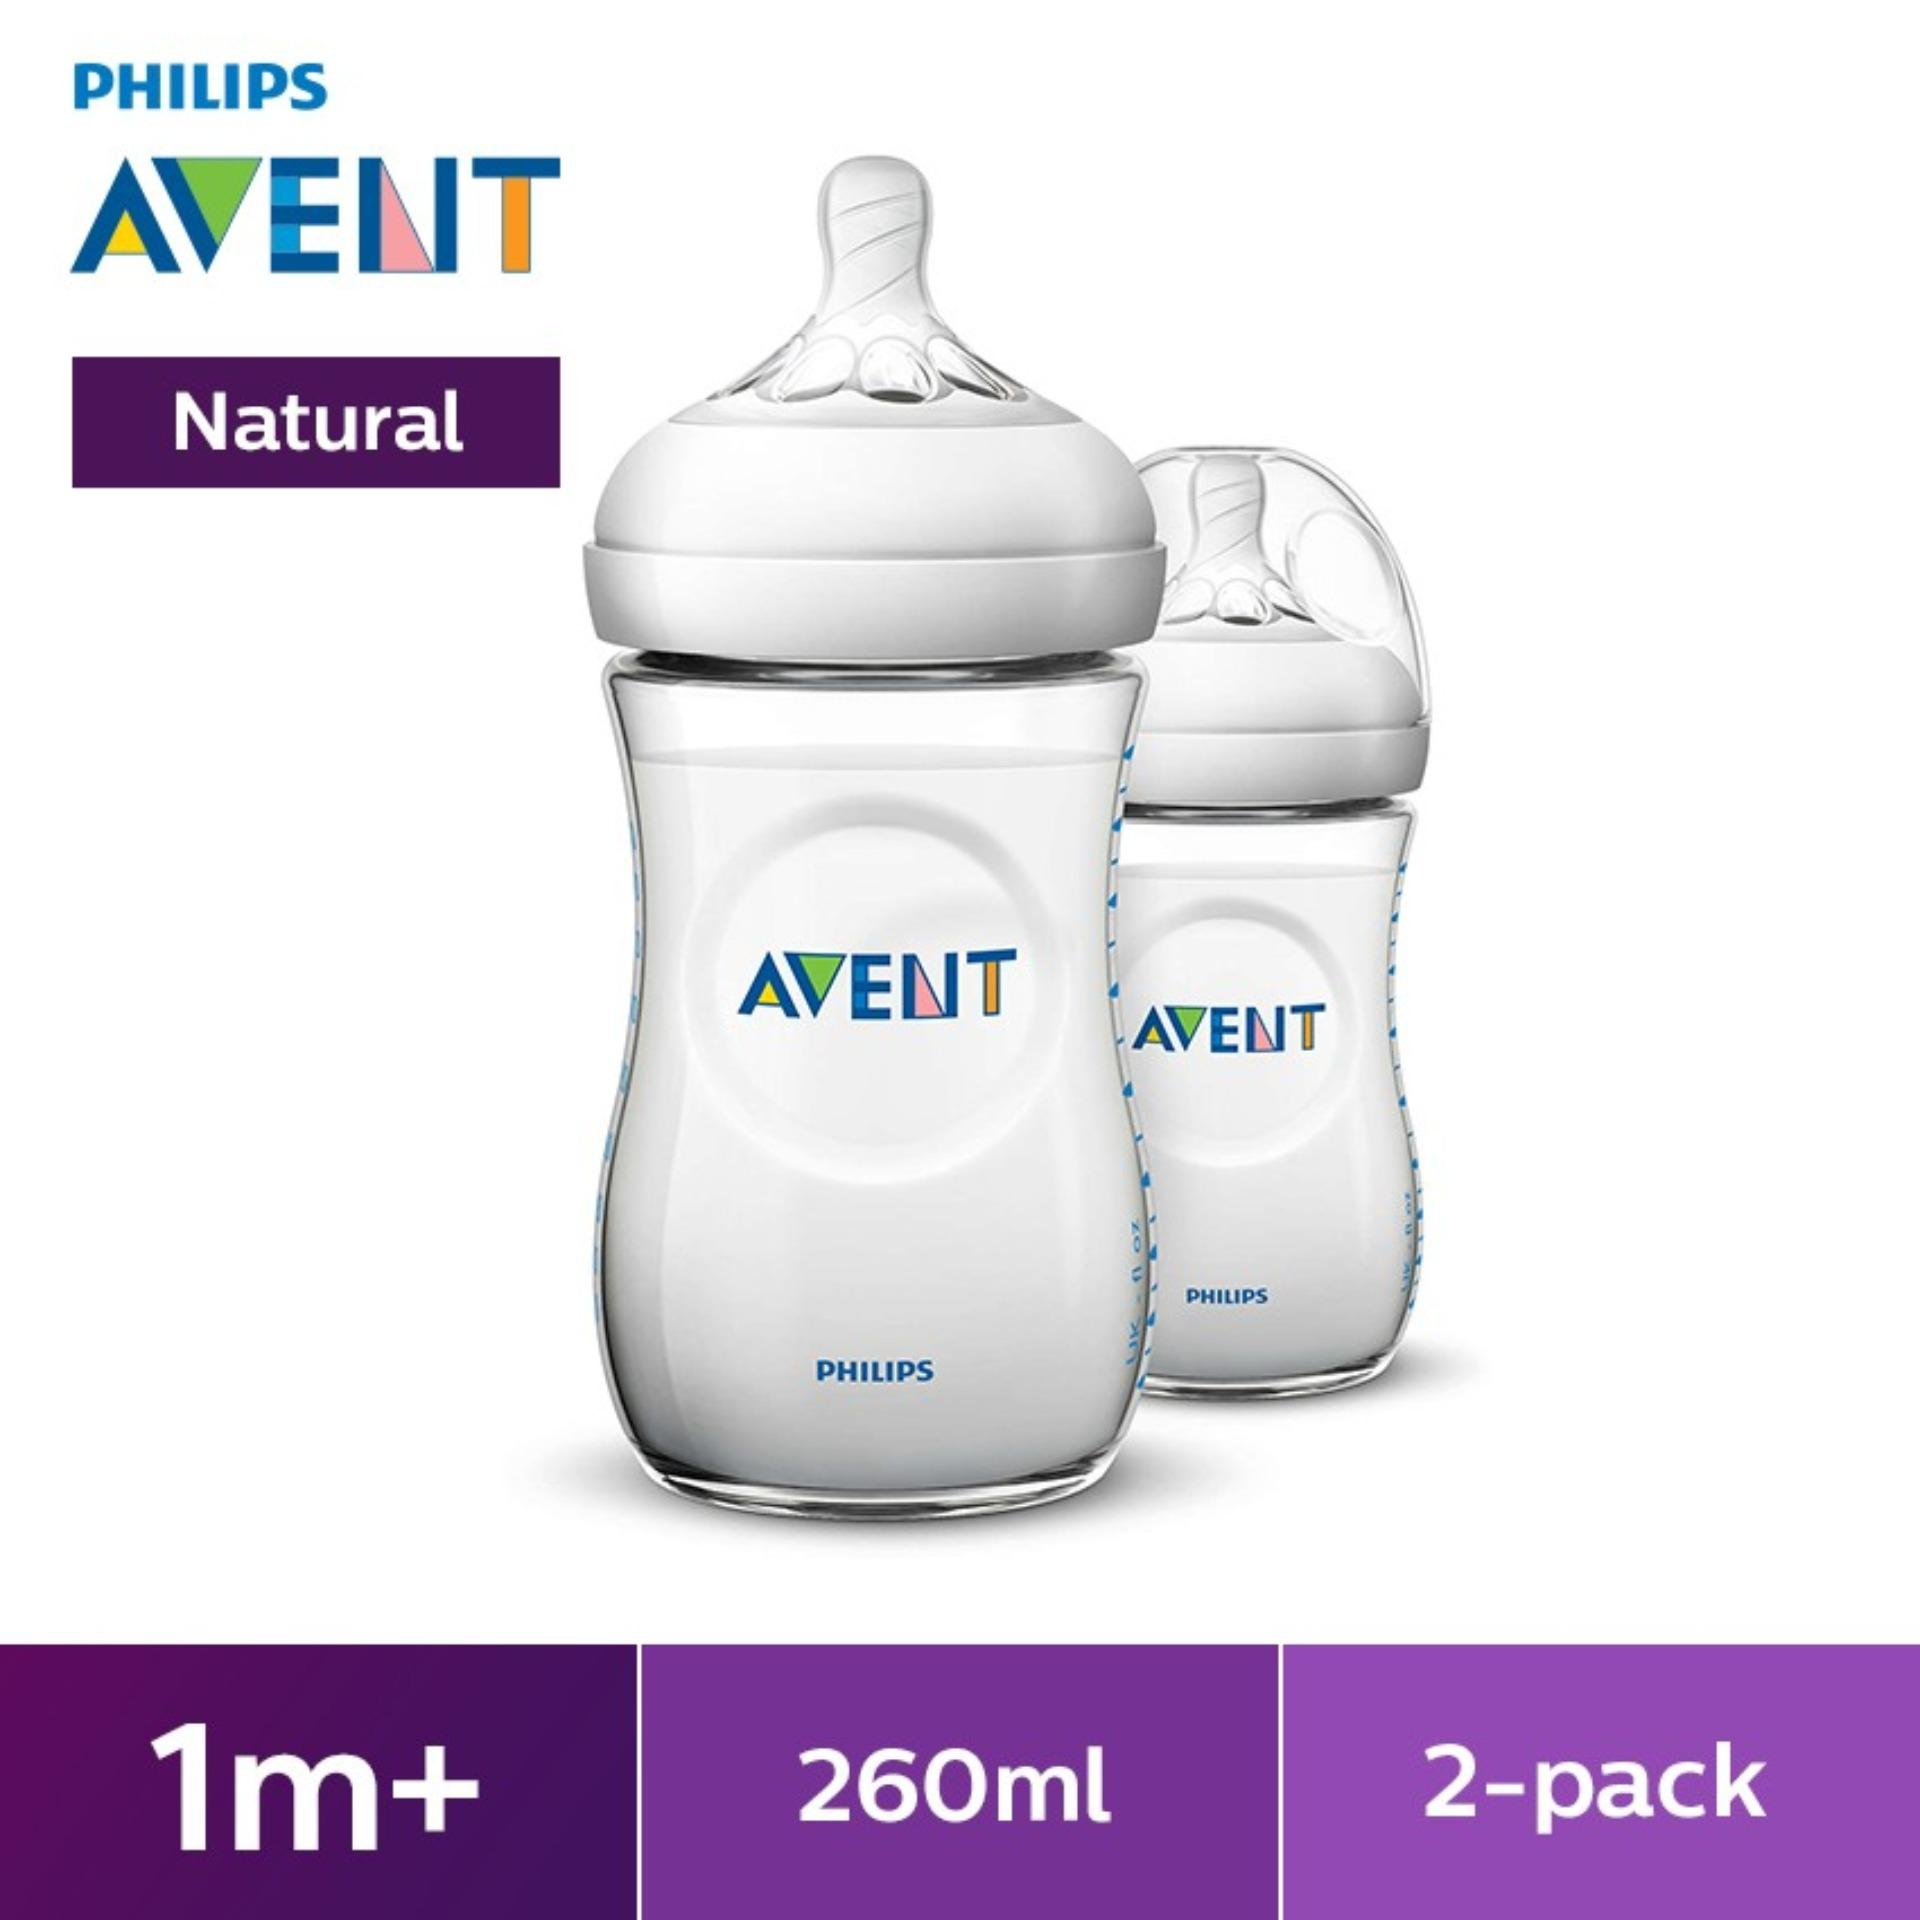 Philips Avent Natural 9oz Bottle Twin Pack By Lazada Retail Philips Avent.